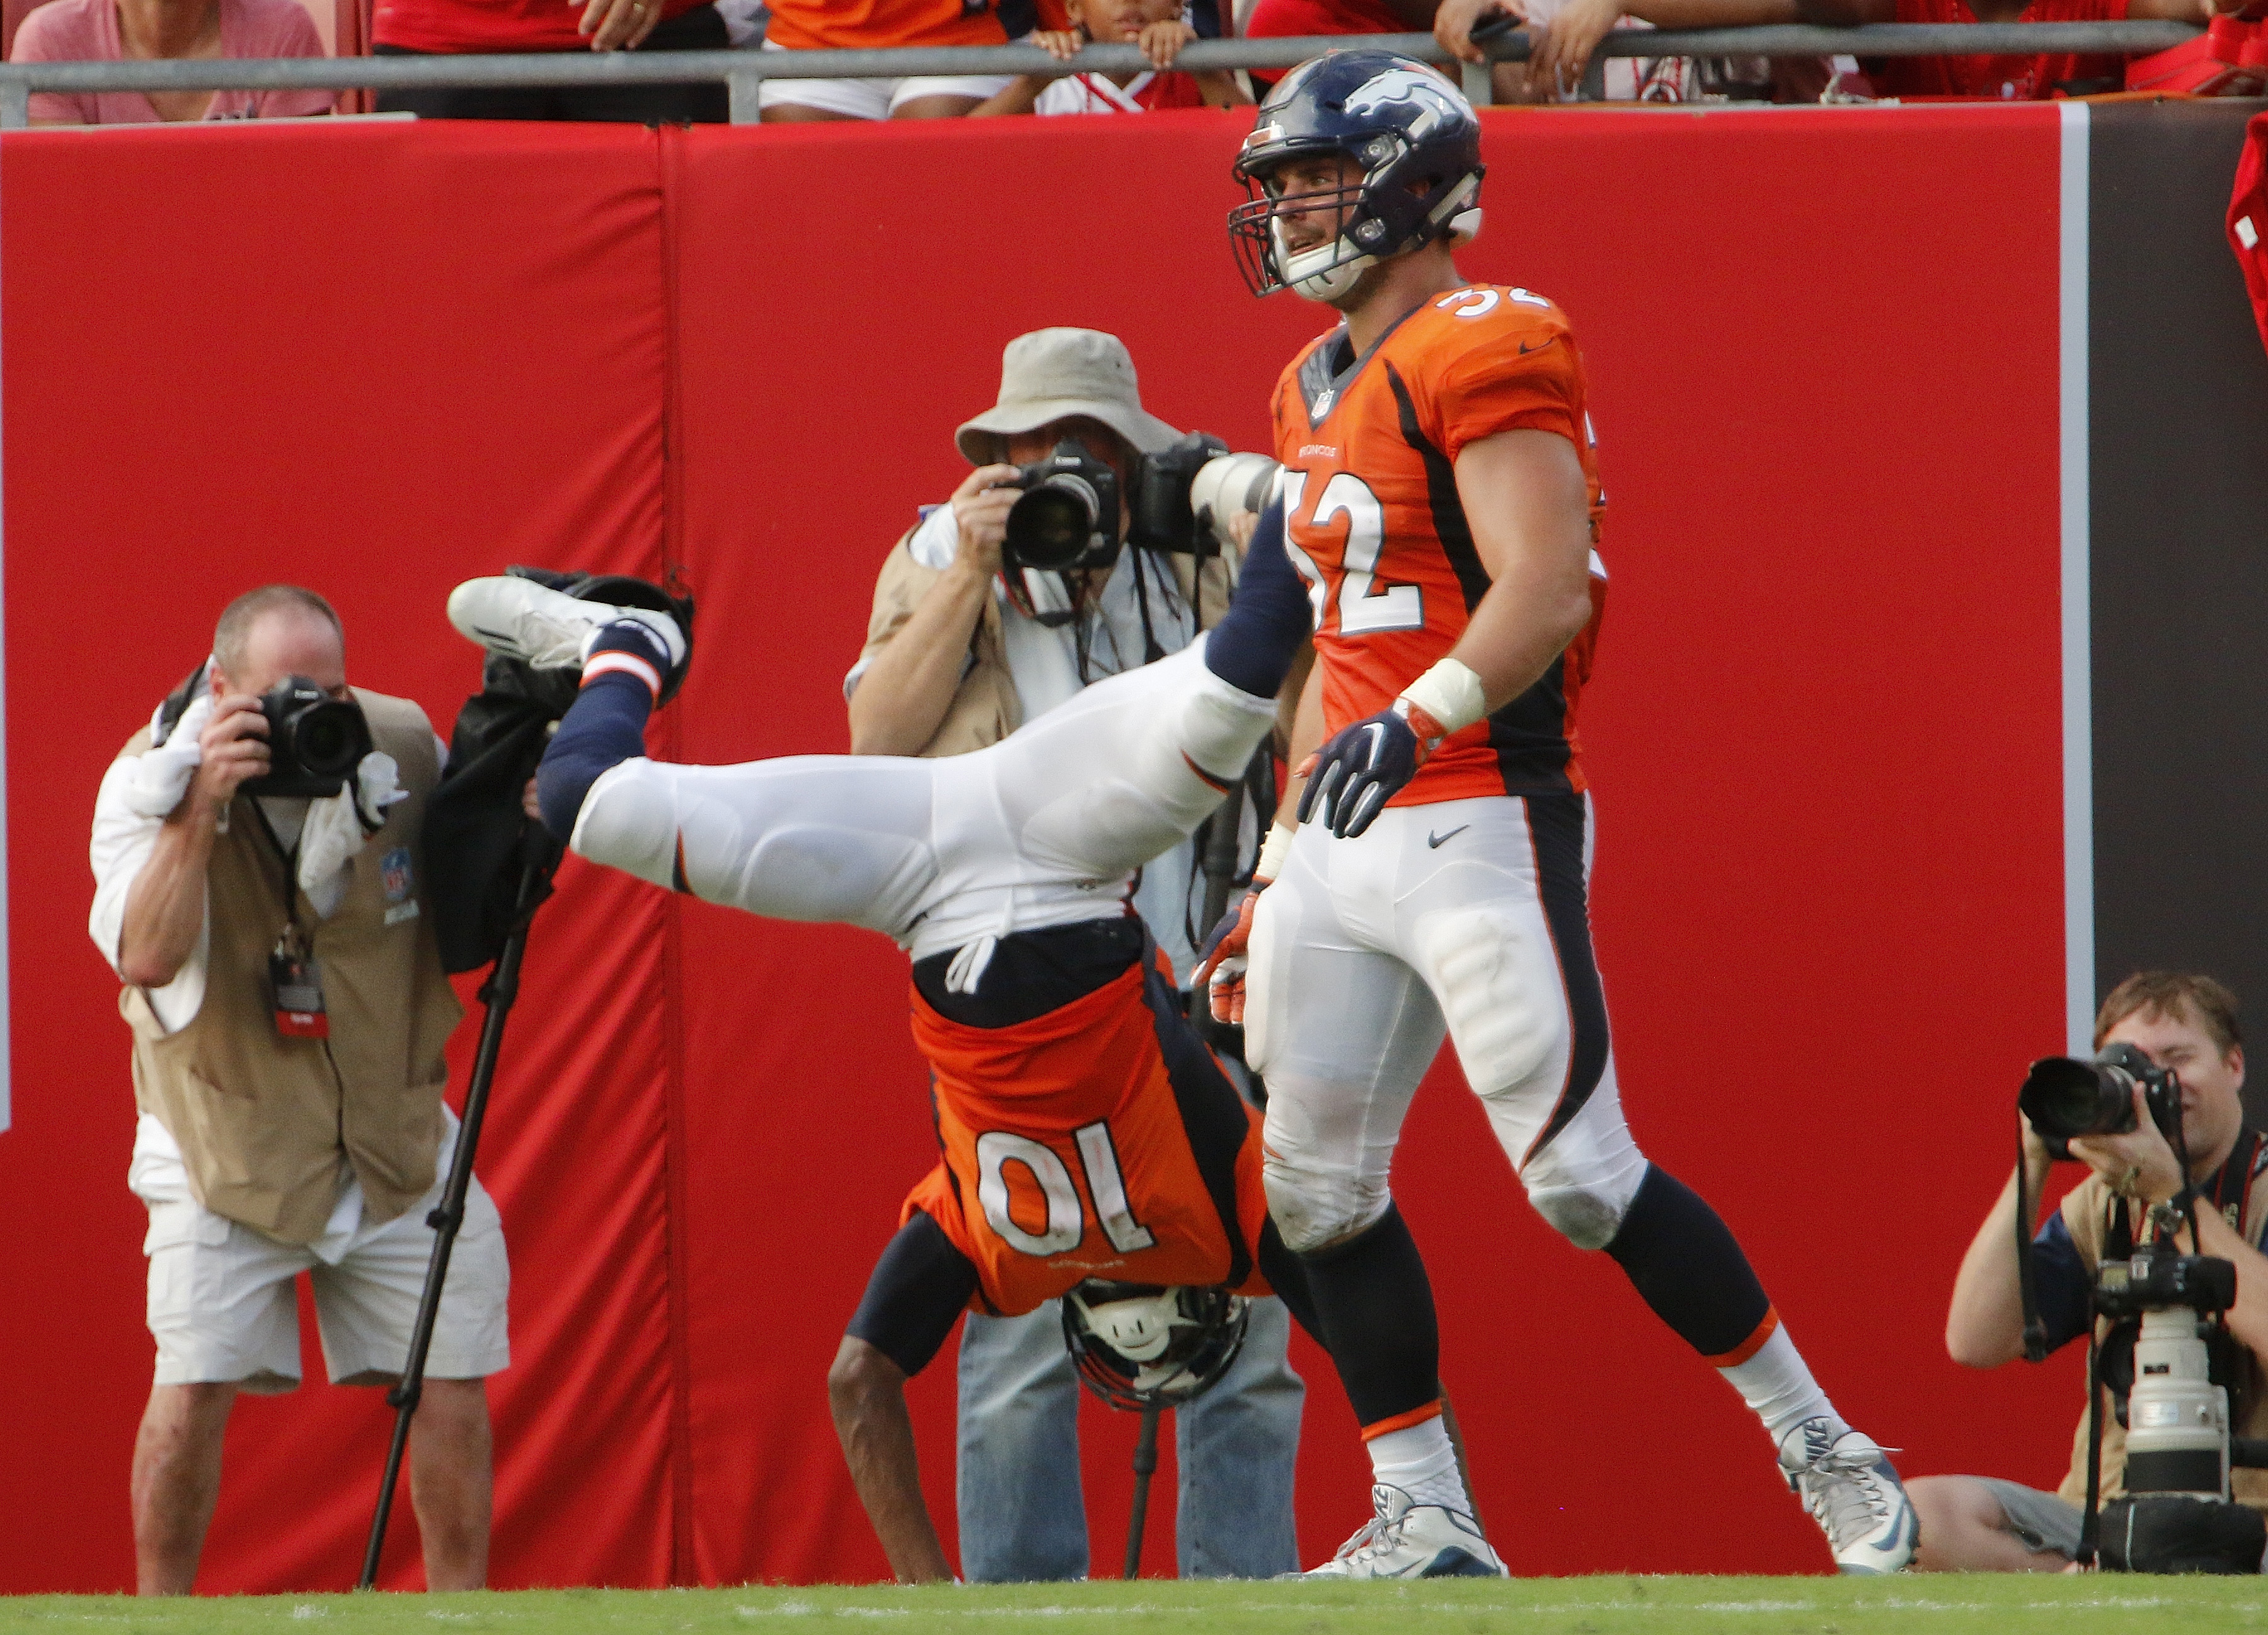 Emmanuel Sanders #10 of the Denver Broncos celebrates his touchdown with a somersault during the fourth quarter of their game the Tampa Bay Buccaneers at Raymond James Stadium on October 2, 2016 in Tampa, Florida. (Photo by Joseph Garnett Jr. /Getty Images)